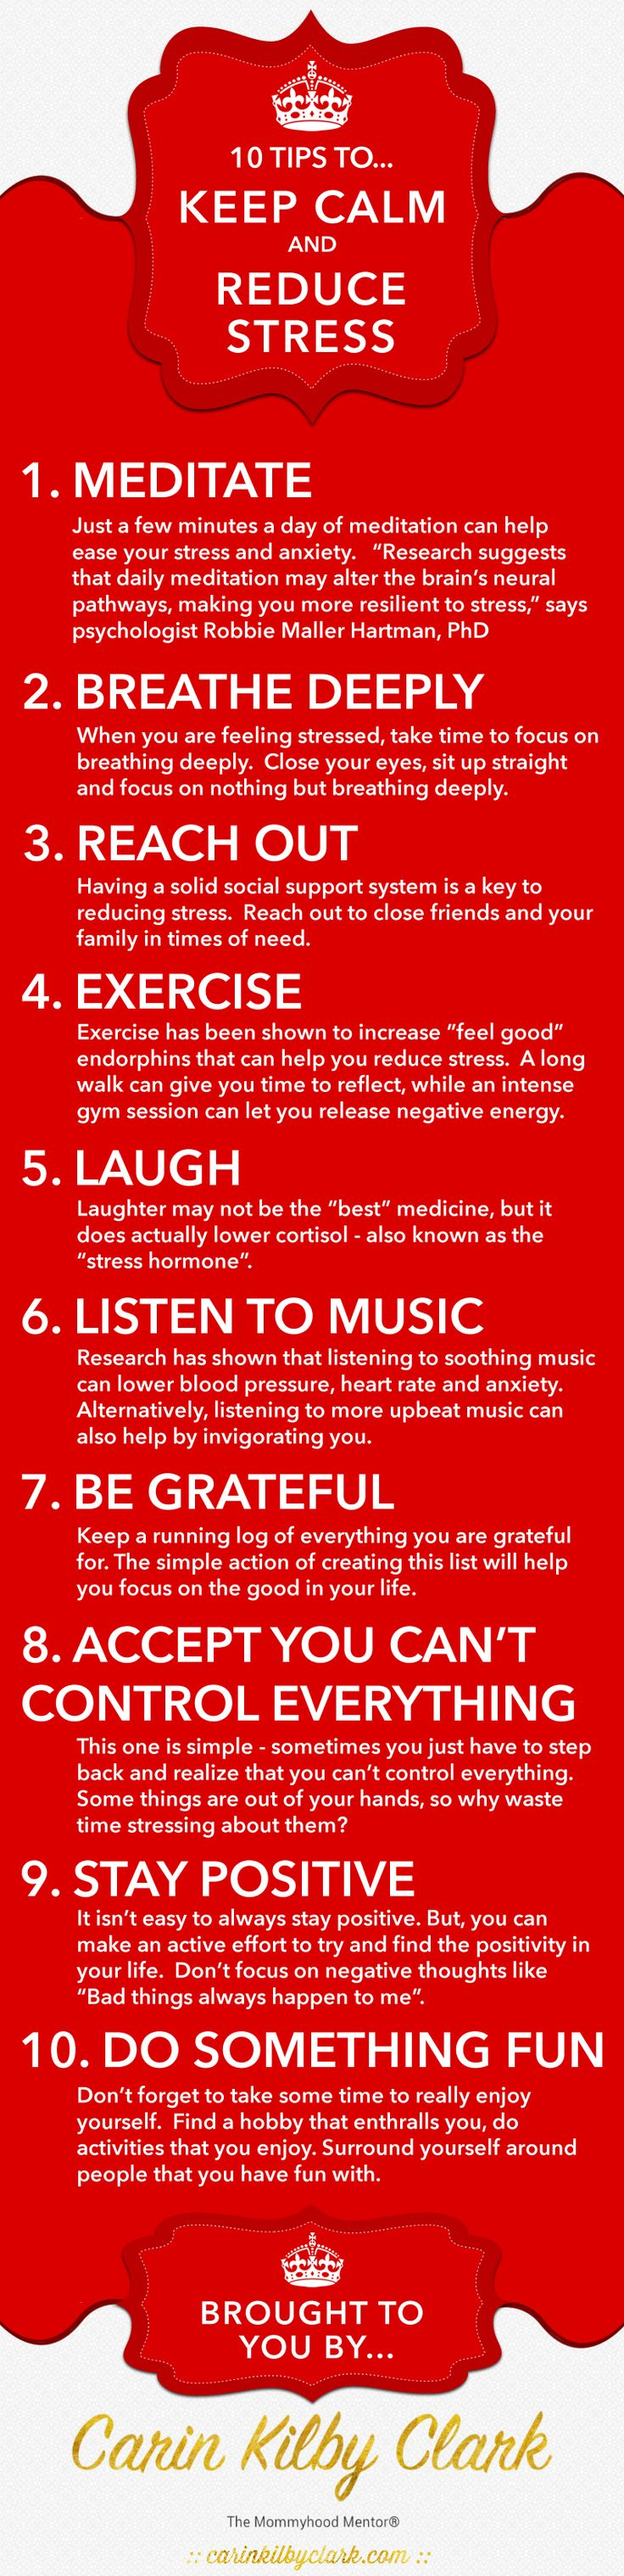 10 Tips to Keep Calm & Reduce Stress [Infographic] via @carinkilbyclark  Further explore stress management & download your free online resources guide: http://ckclark.us/StressLessGuide